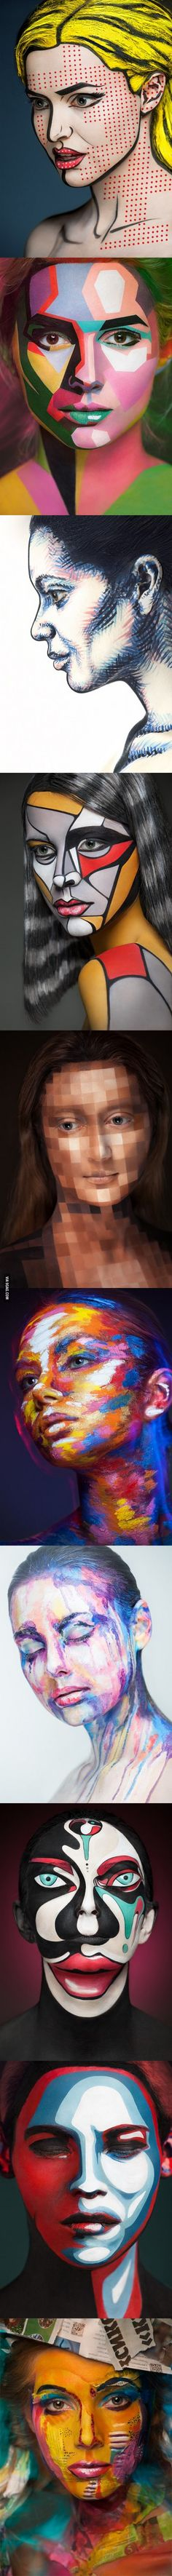 Incredible photographs of people wearing face paint AMAZING